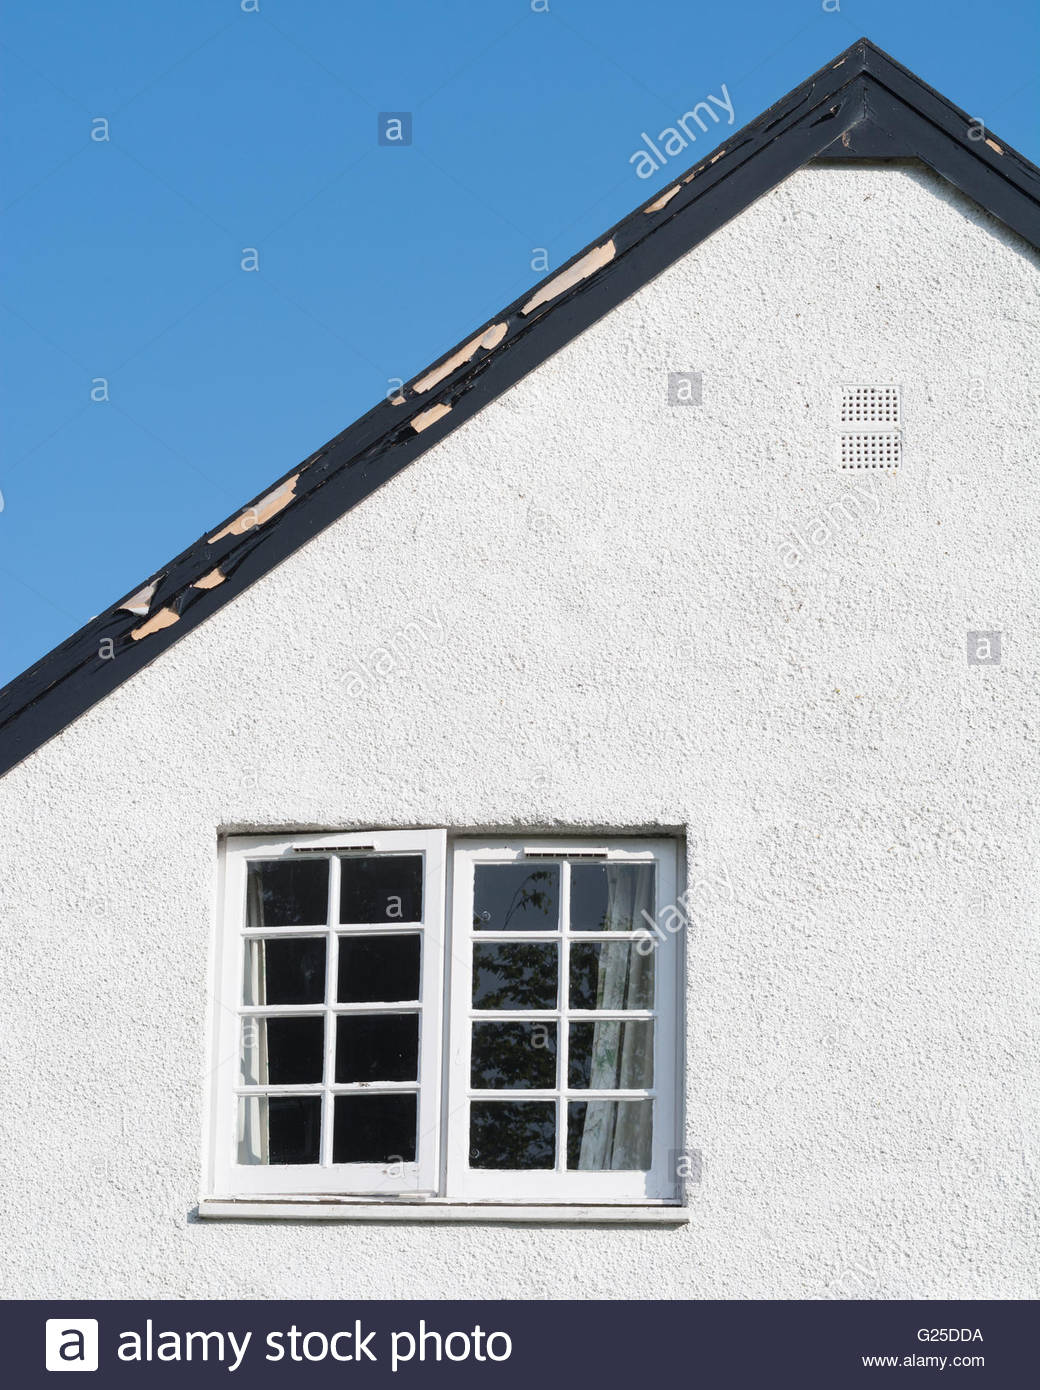 How to paint fascia boards - Stock Photo House Eaves In Need Of Painting With Flaking Paint On Wooden Fascia Board